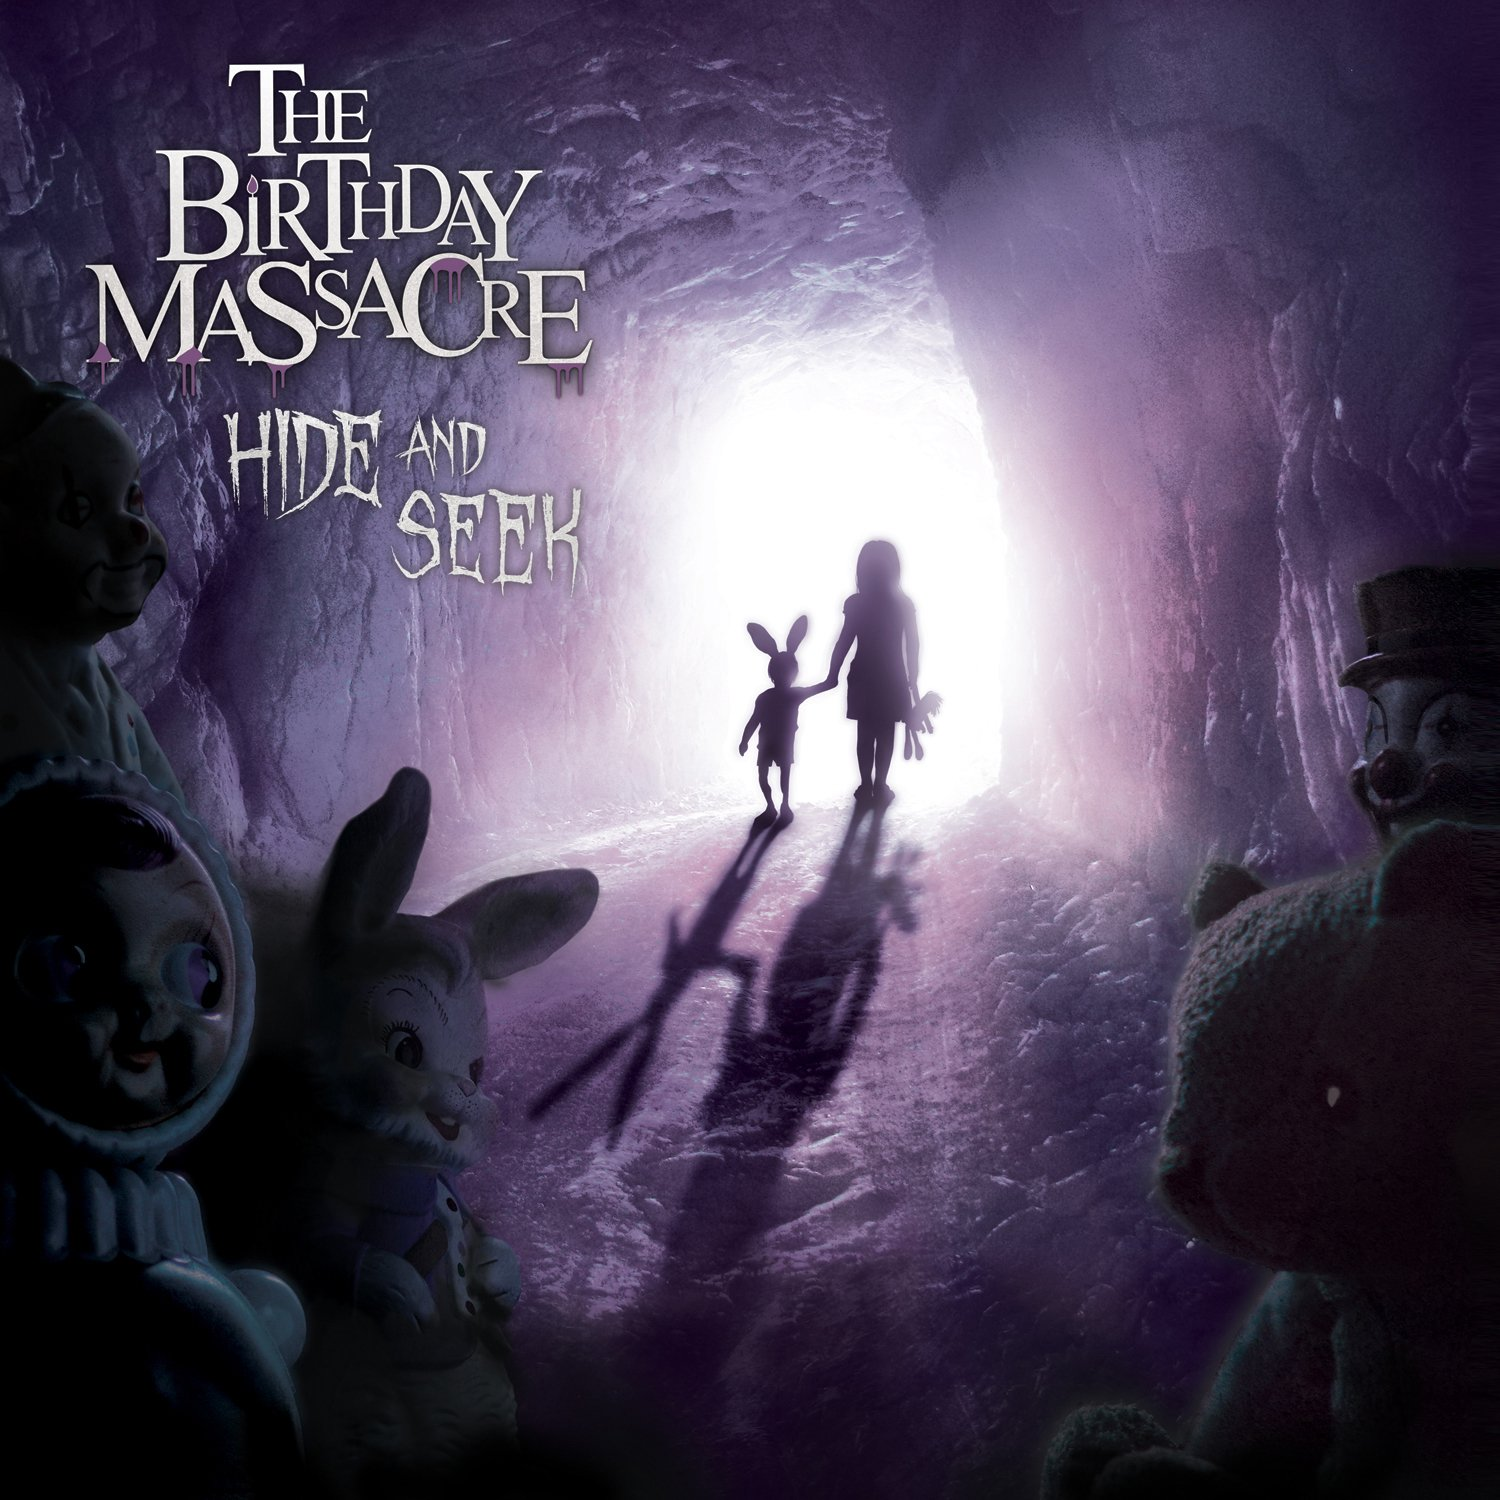 CD : The Birthday Massacre - Hide and Seek (CD)